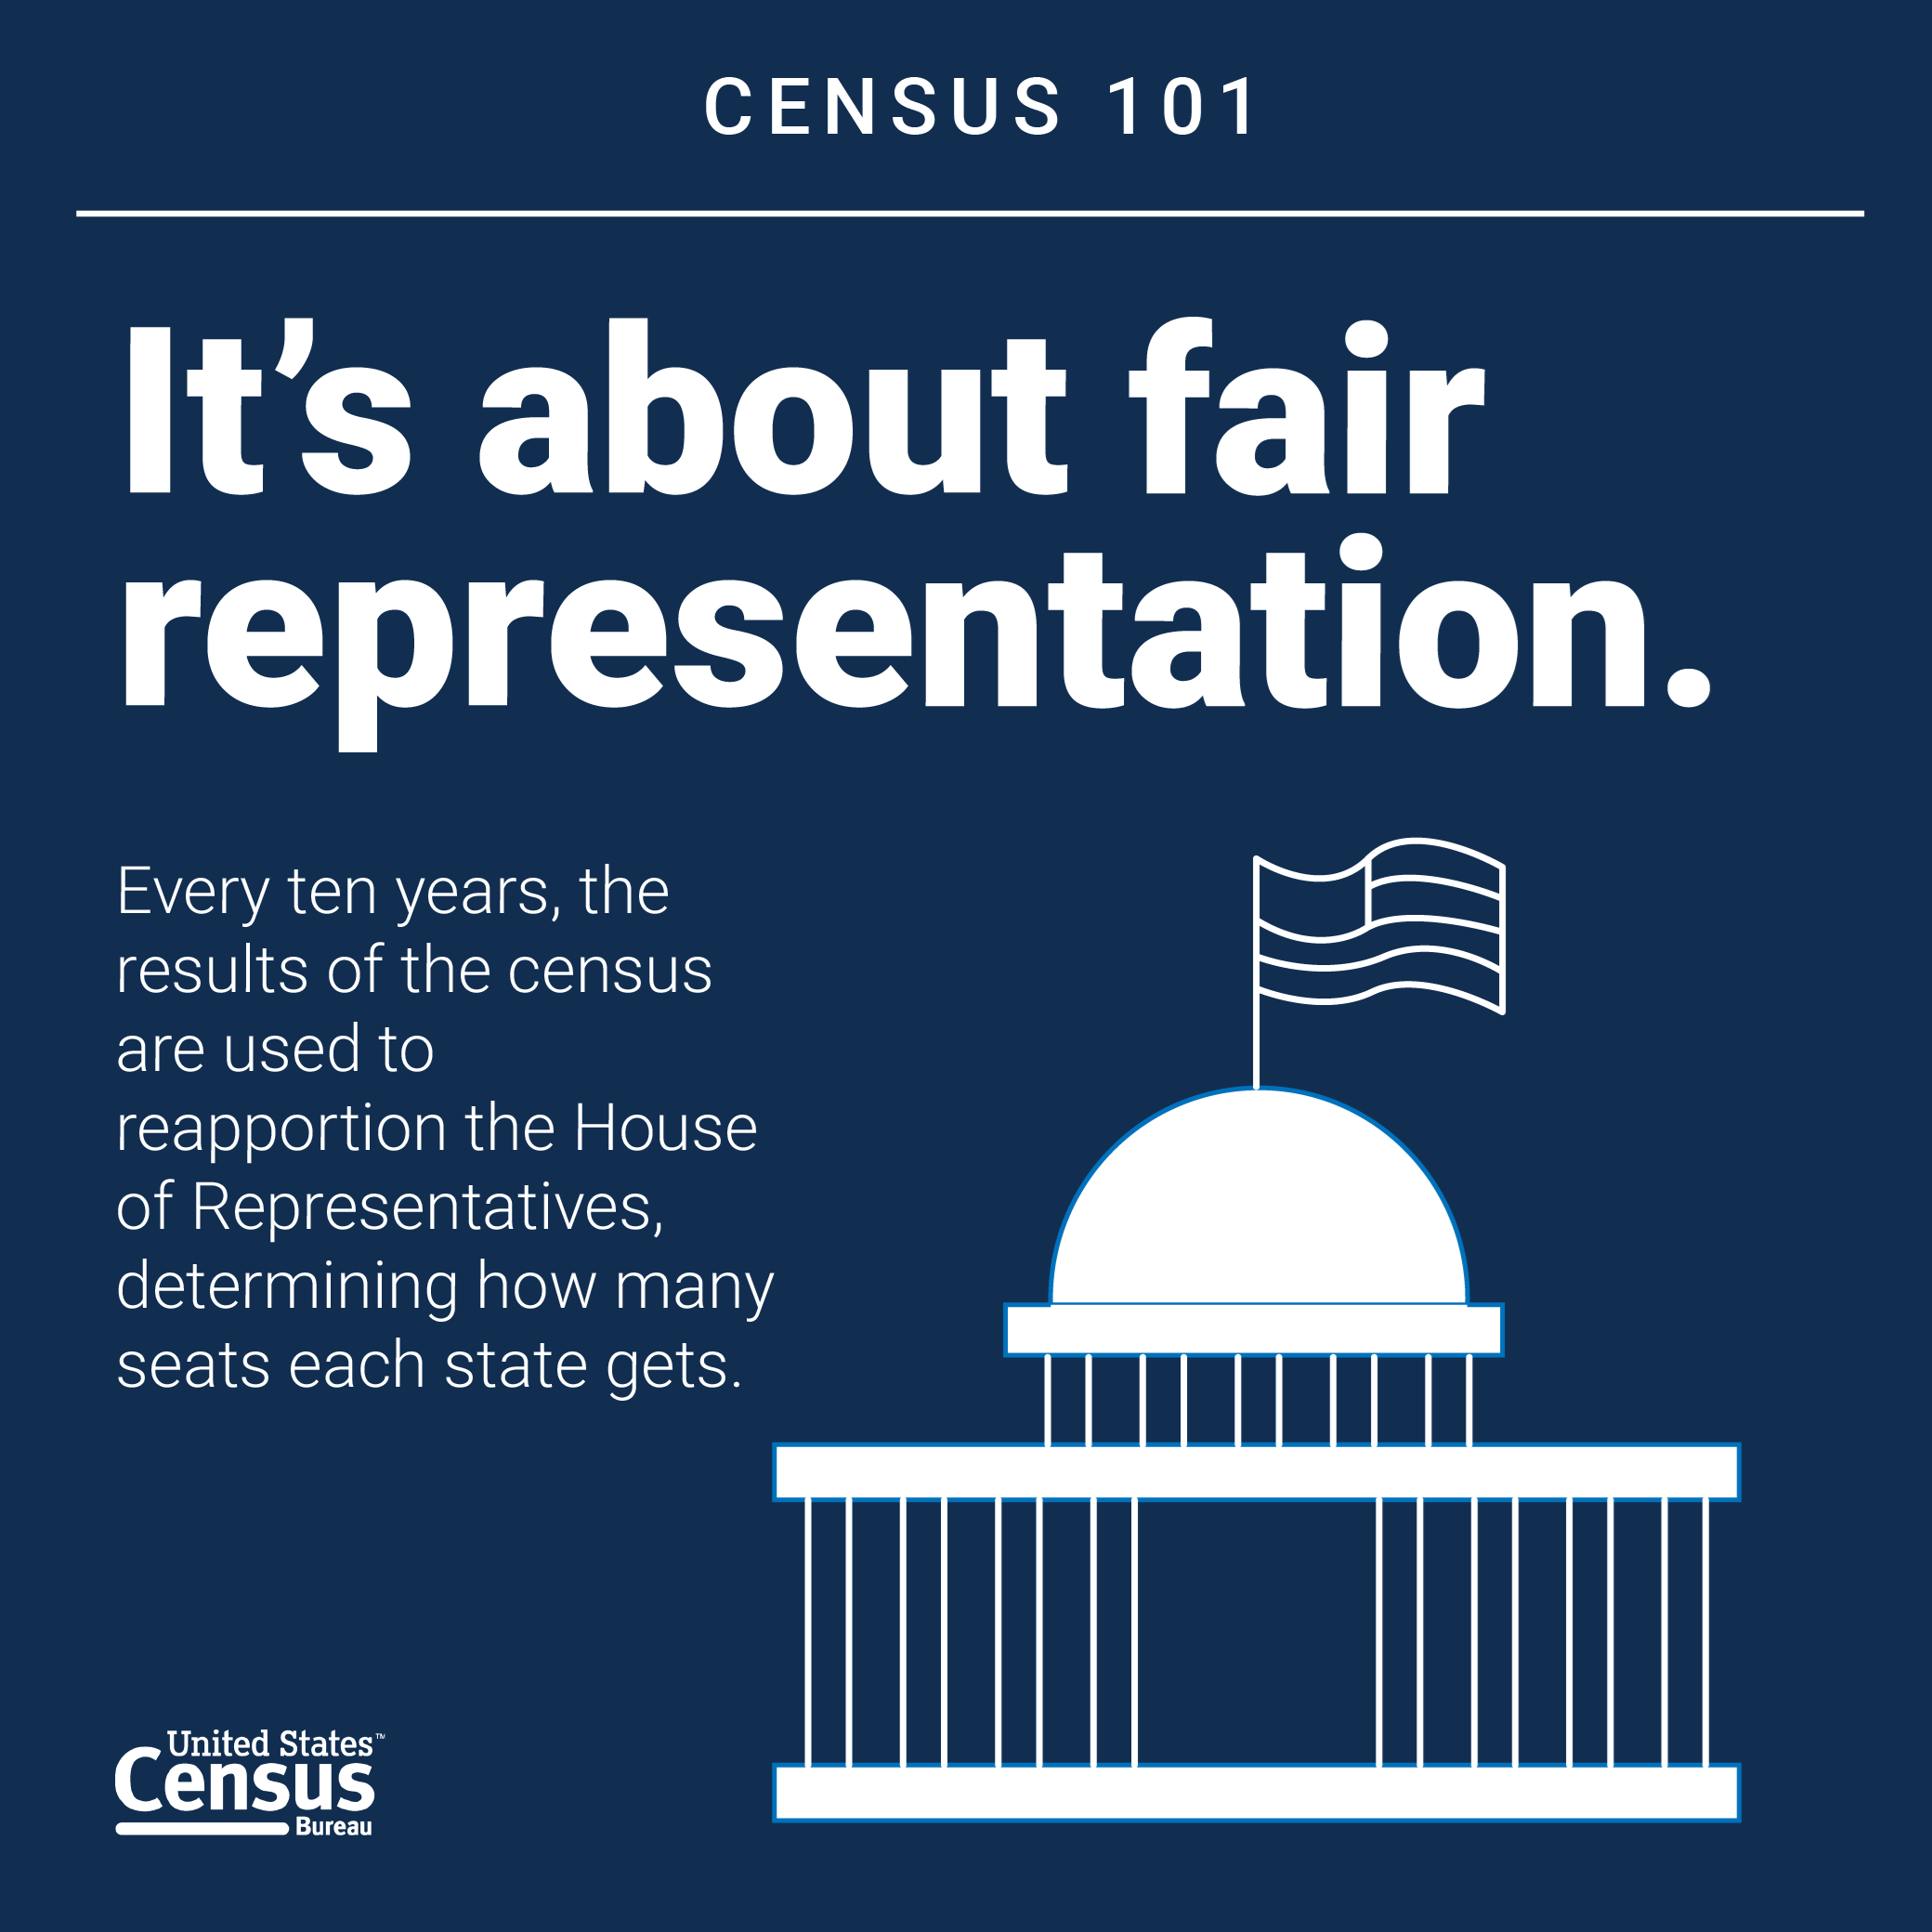 Dallas County Counts 2020 Details Efforts to Ensure Participation in U.S. Census